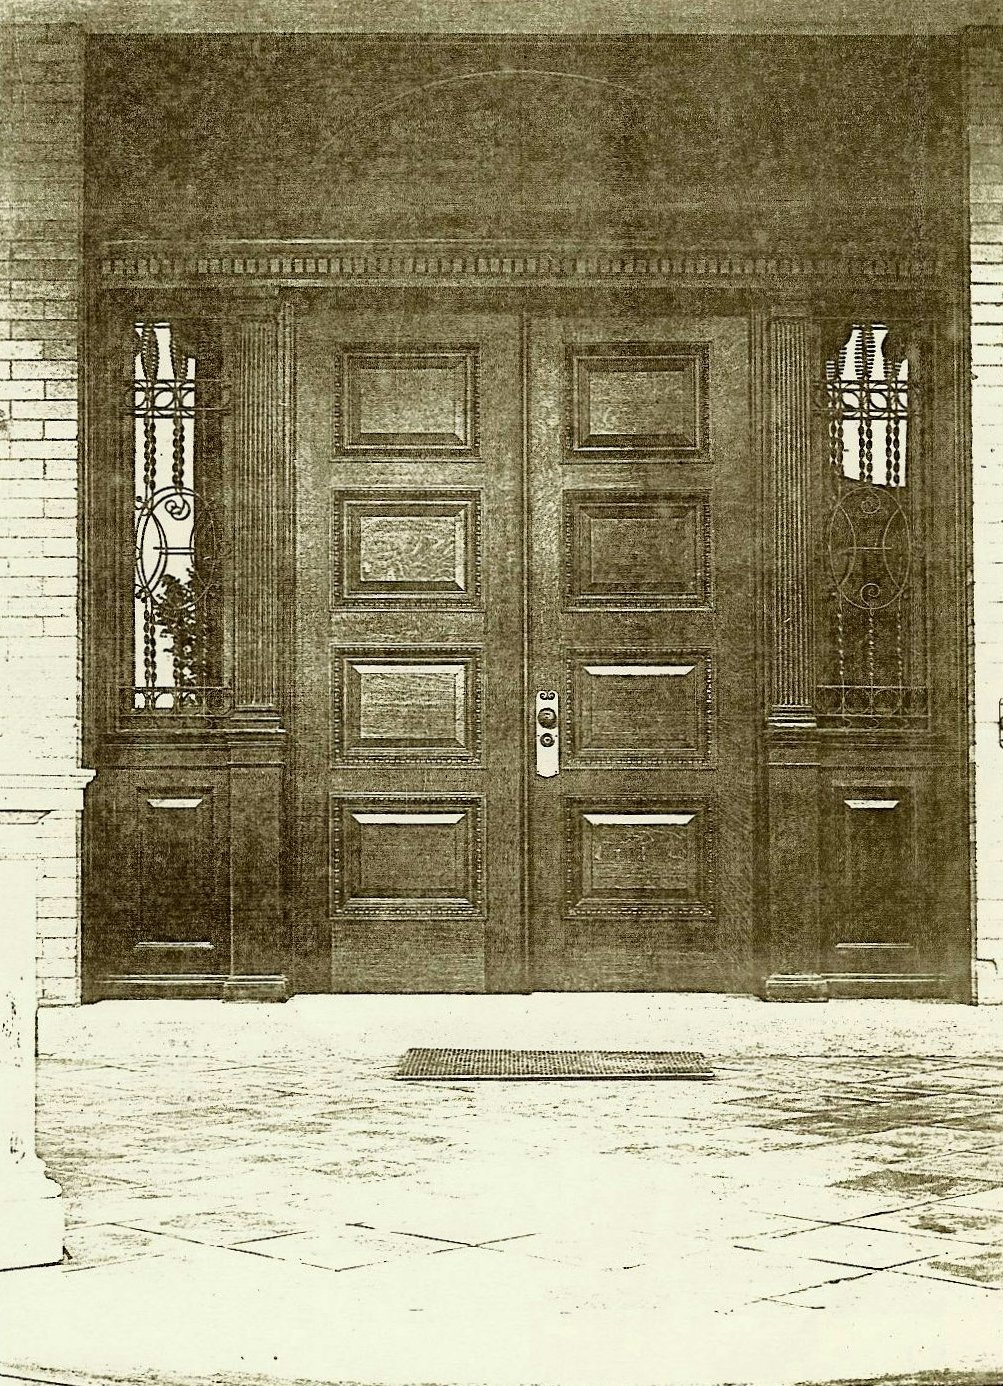 Hinkle-Murphy House, 1886 619 South 10th Street Minneapolis, Minnesota Architect: William Channing Whitney Exterior: Looking at the front doors. Northwestern Architect Supplement Vol. 6. No. 7 1886 Minneapolis Library History Collection